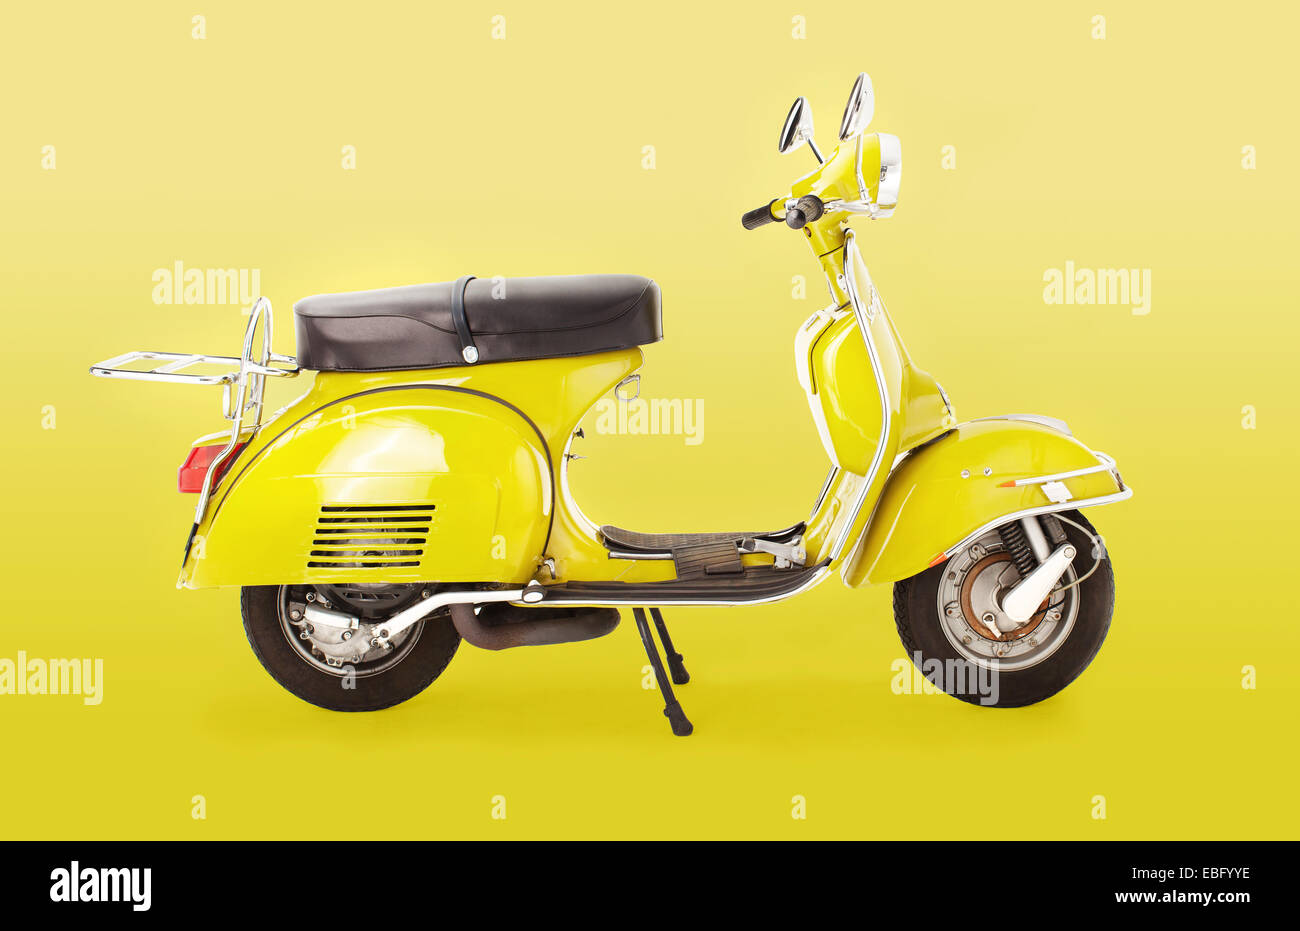 Profile of 1971 Rally Vespa scooter - Stock Image